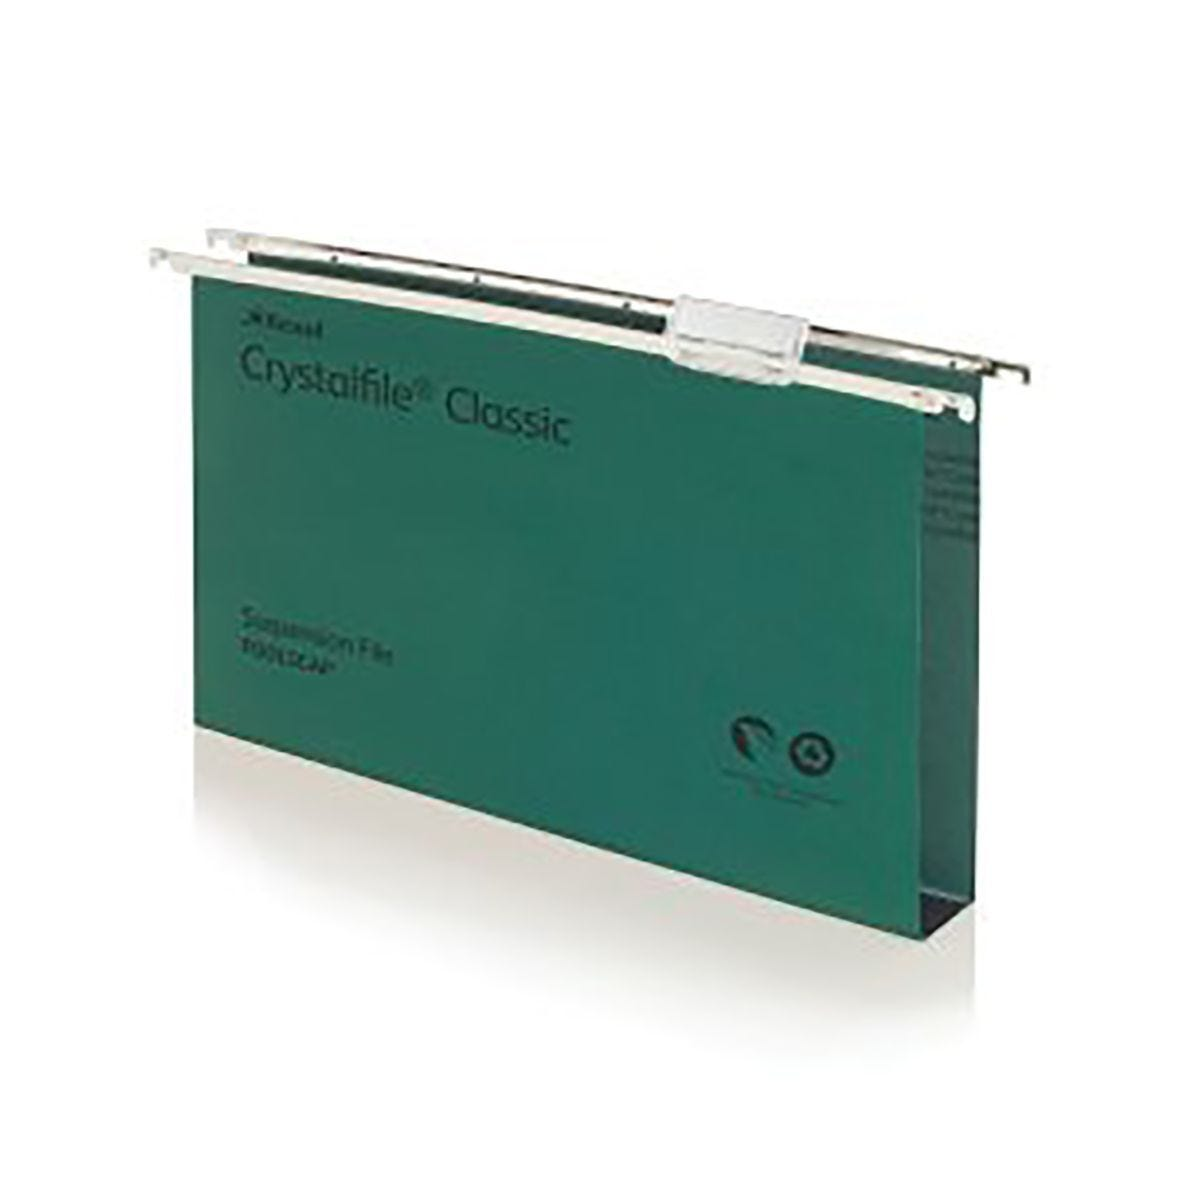 Rexel Crystalfile Classic Foolscap Suspension File 30mm Pack of 50 Green